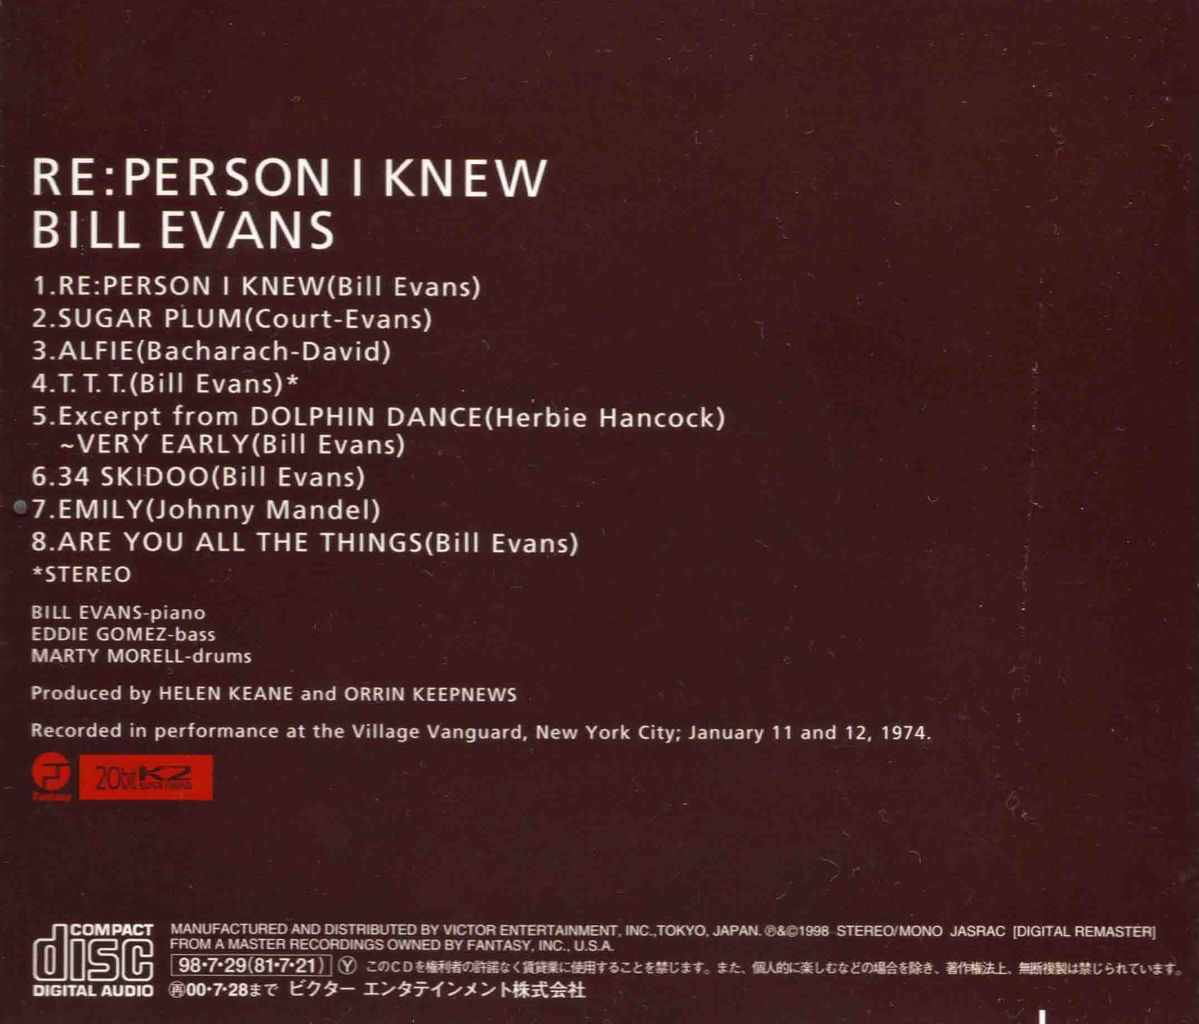 RE:PERSON I KNEW-2